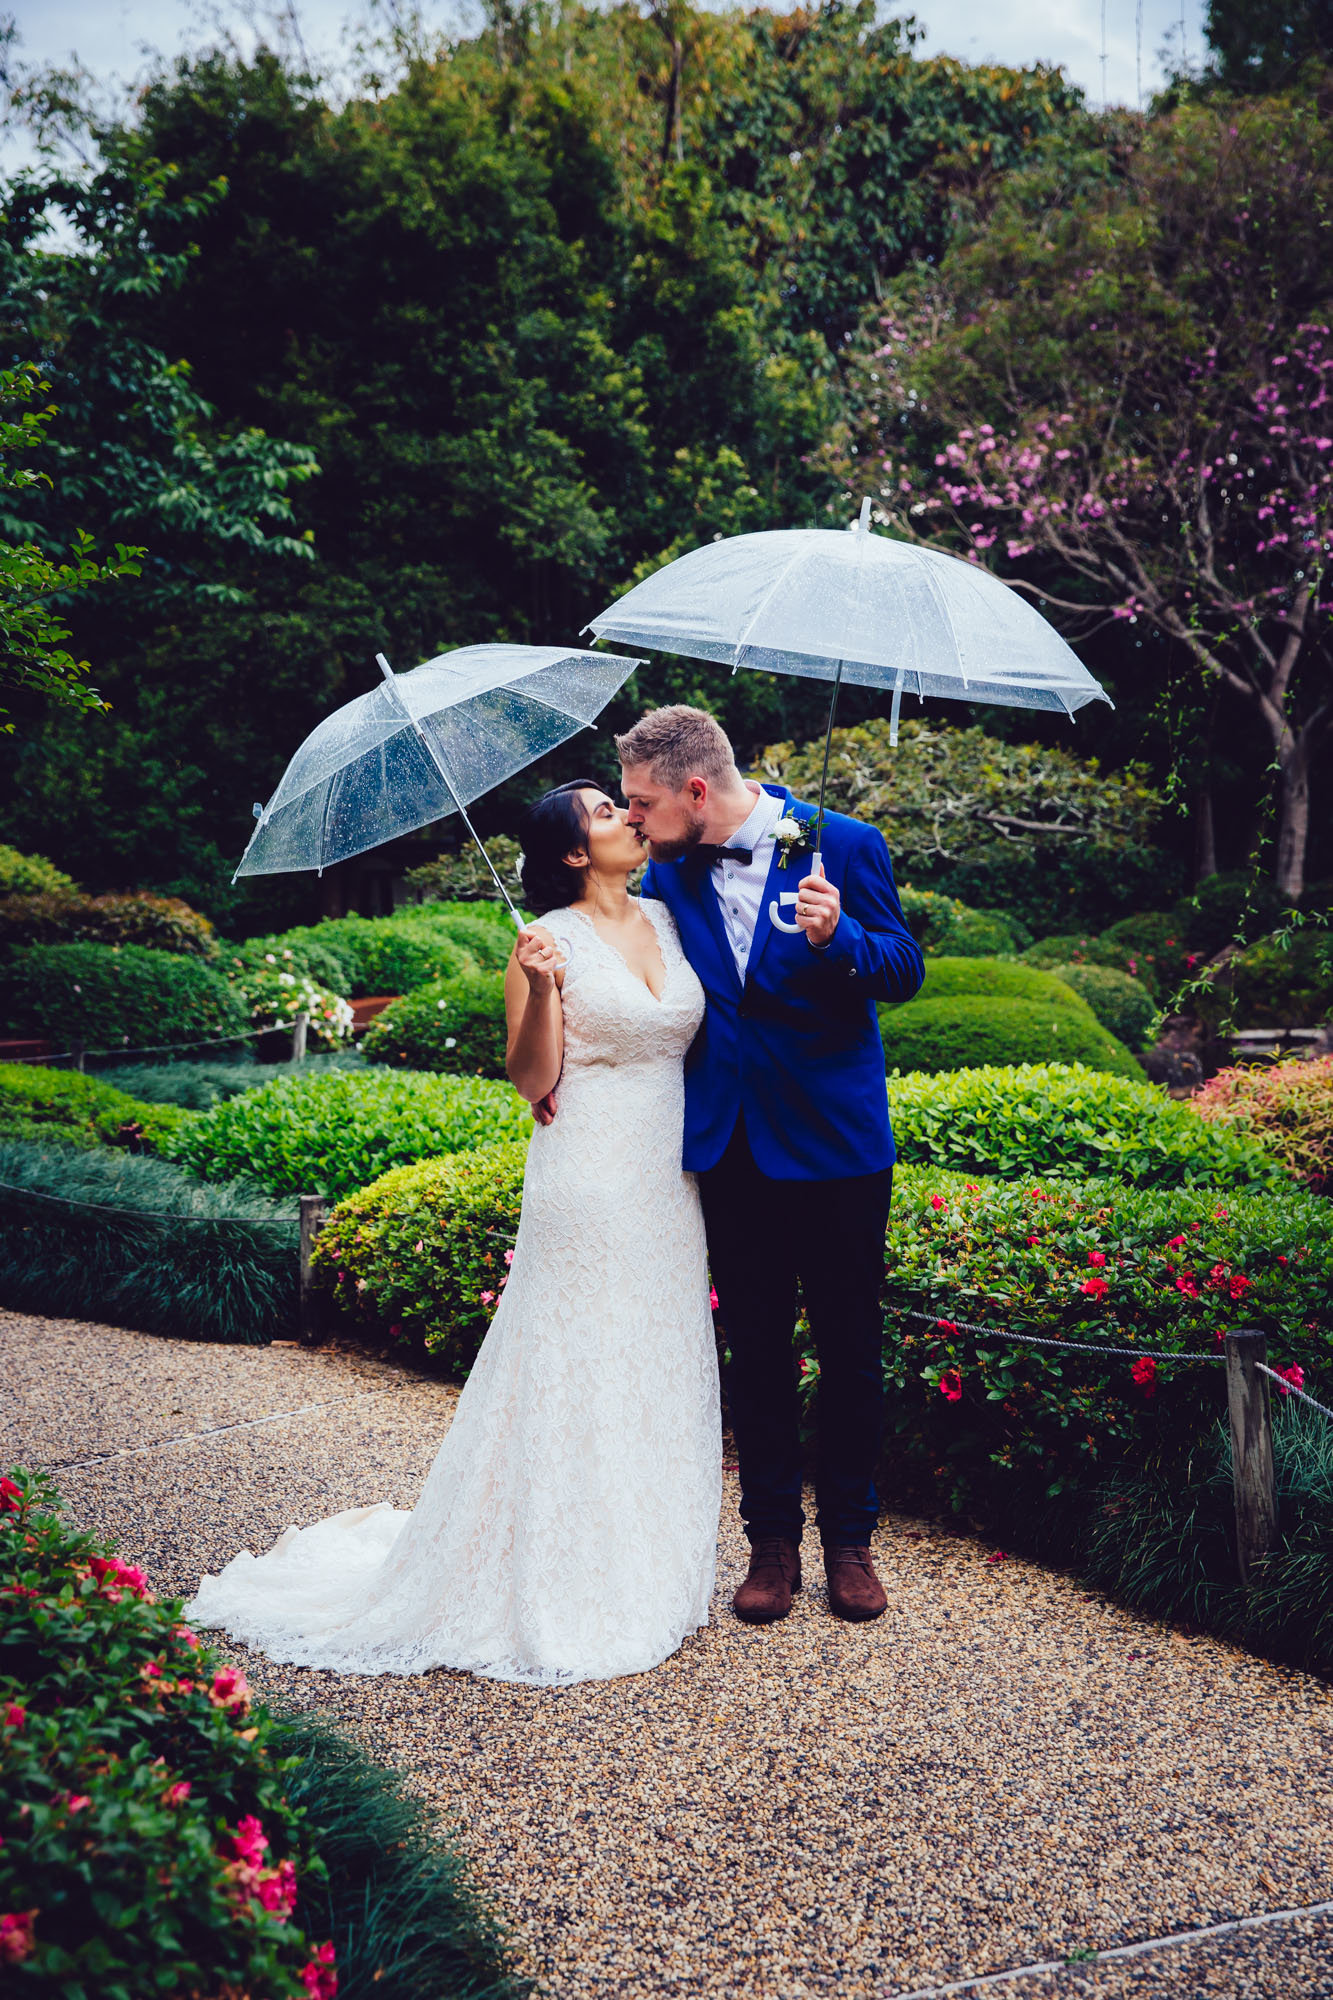 Mel_Tom_MountCoot-tha_BotanicalGardens_Darling&Co_WeddingPhotography_AnnaOsetroff_Website-46